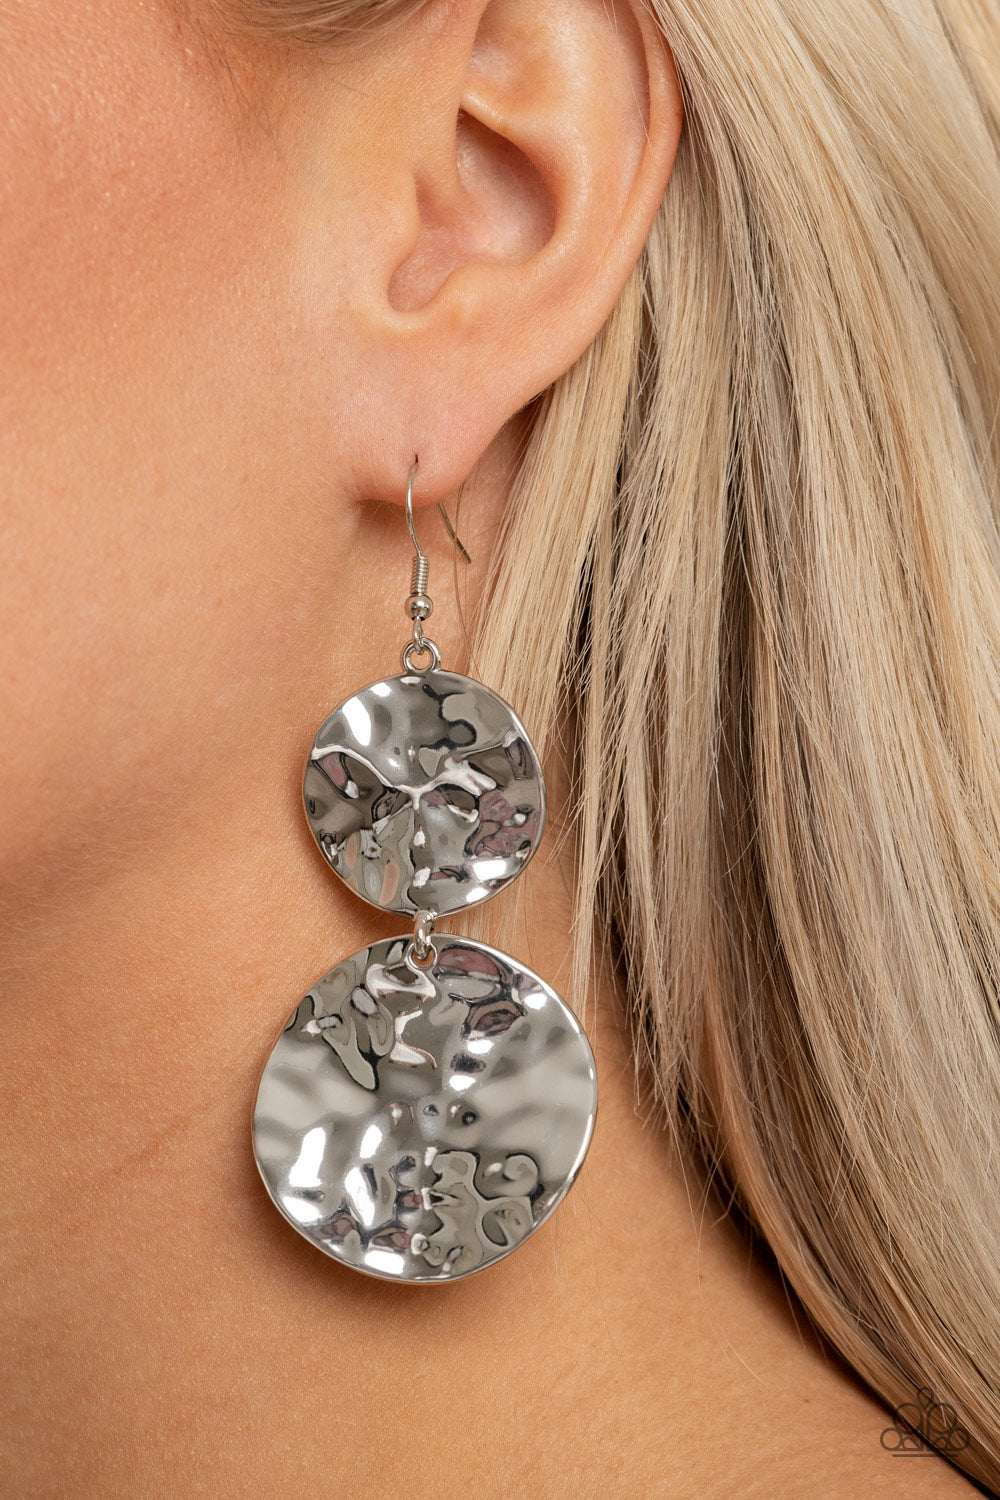 HARDWARE-Headed - Silver Earrings - Paparazzi Accessories